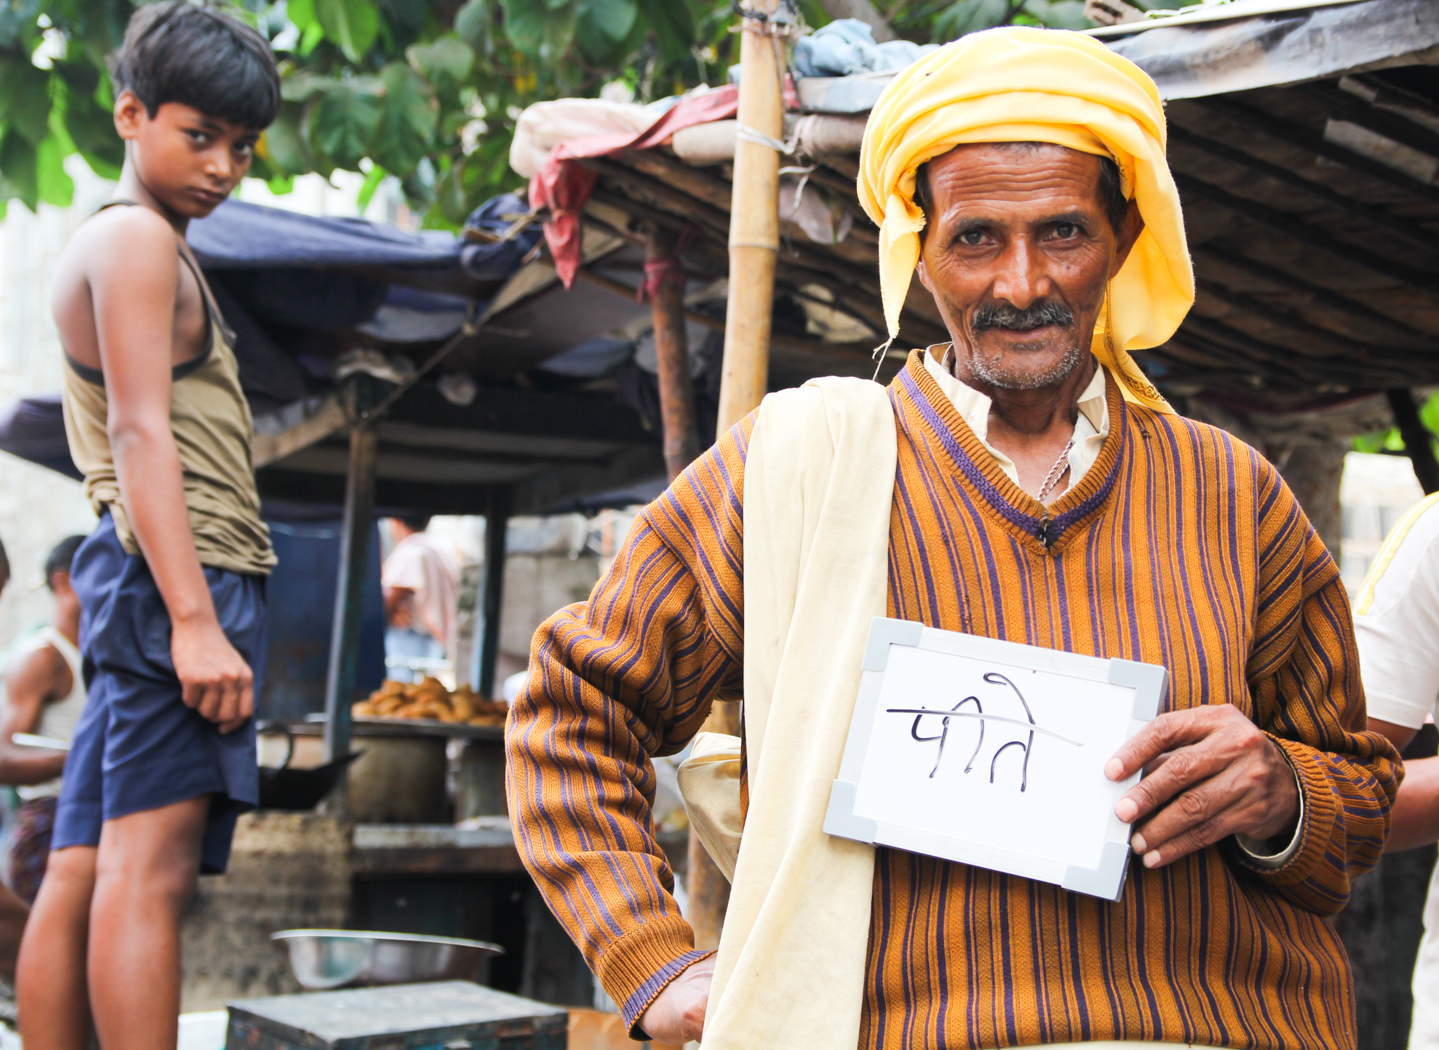 Rajendra Thakur, a resident of Patna, Bihar, thinks 'drink' when he hears the word chai.